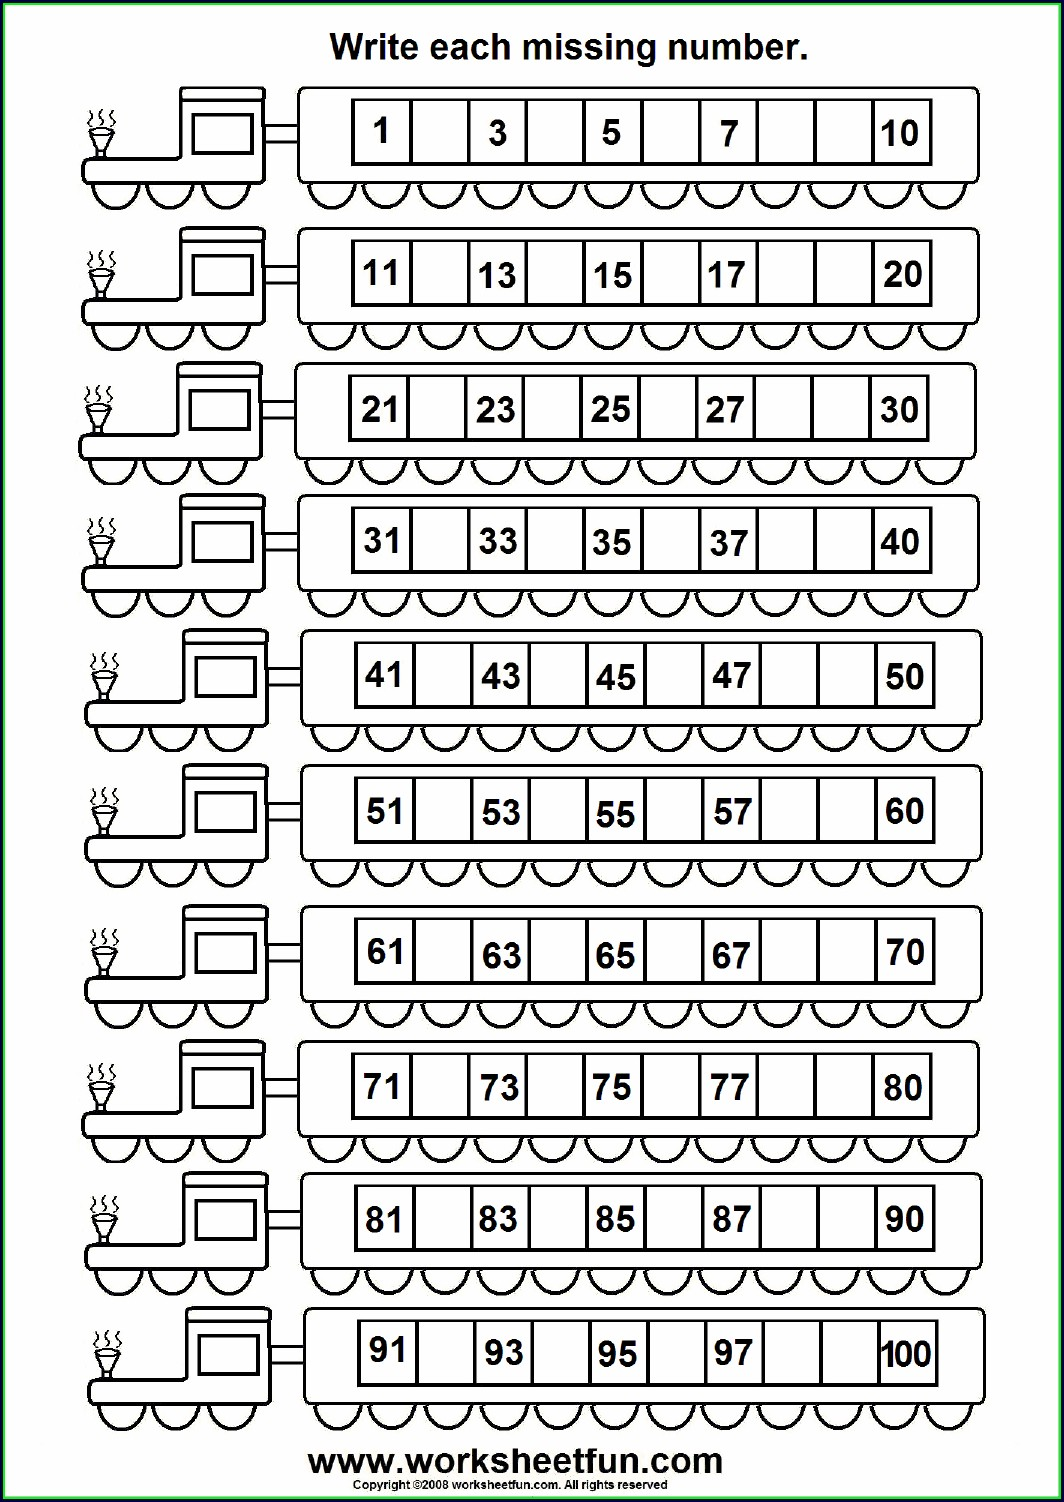 Worksheet For Missing Numbers 1 50